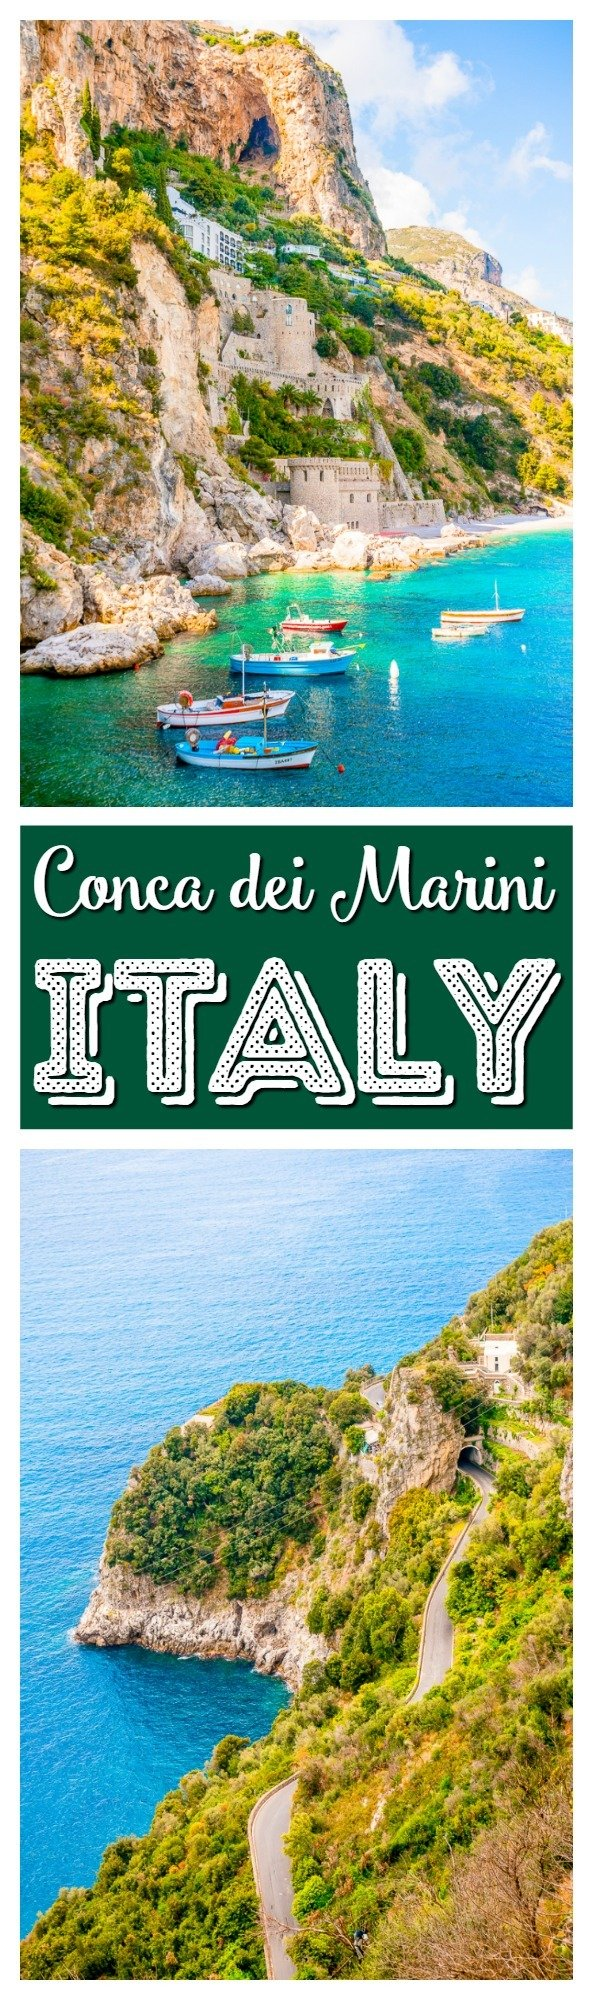 Conca dei Marini is a small village along the Amalfi Coast in Italy and it's the perfect place to escape the crowds and experience the beauty this region has to offer. via @sugarandsoulco